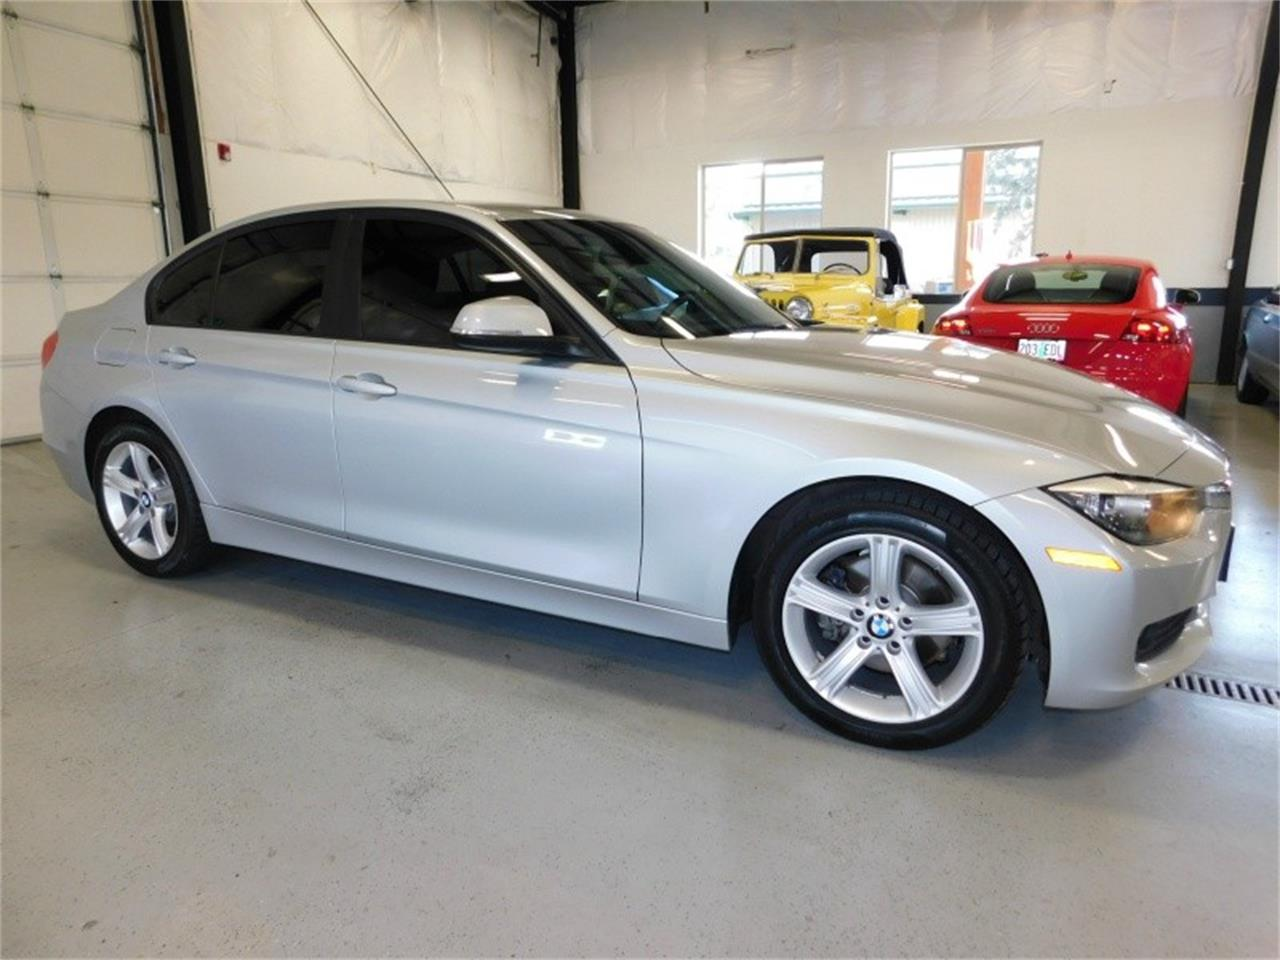 2014 BMW 3 Series (CC-1232947) for sale in Bend, Oregon